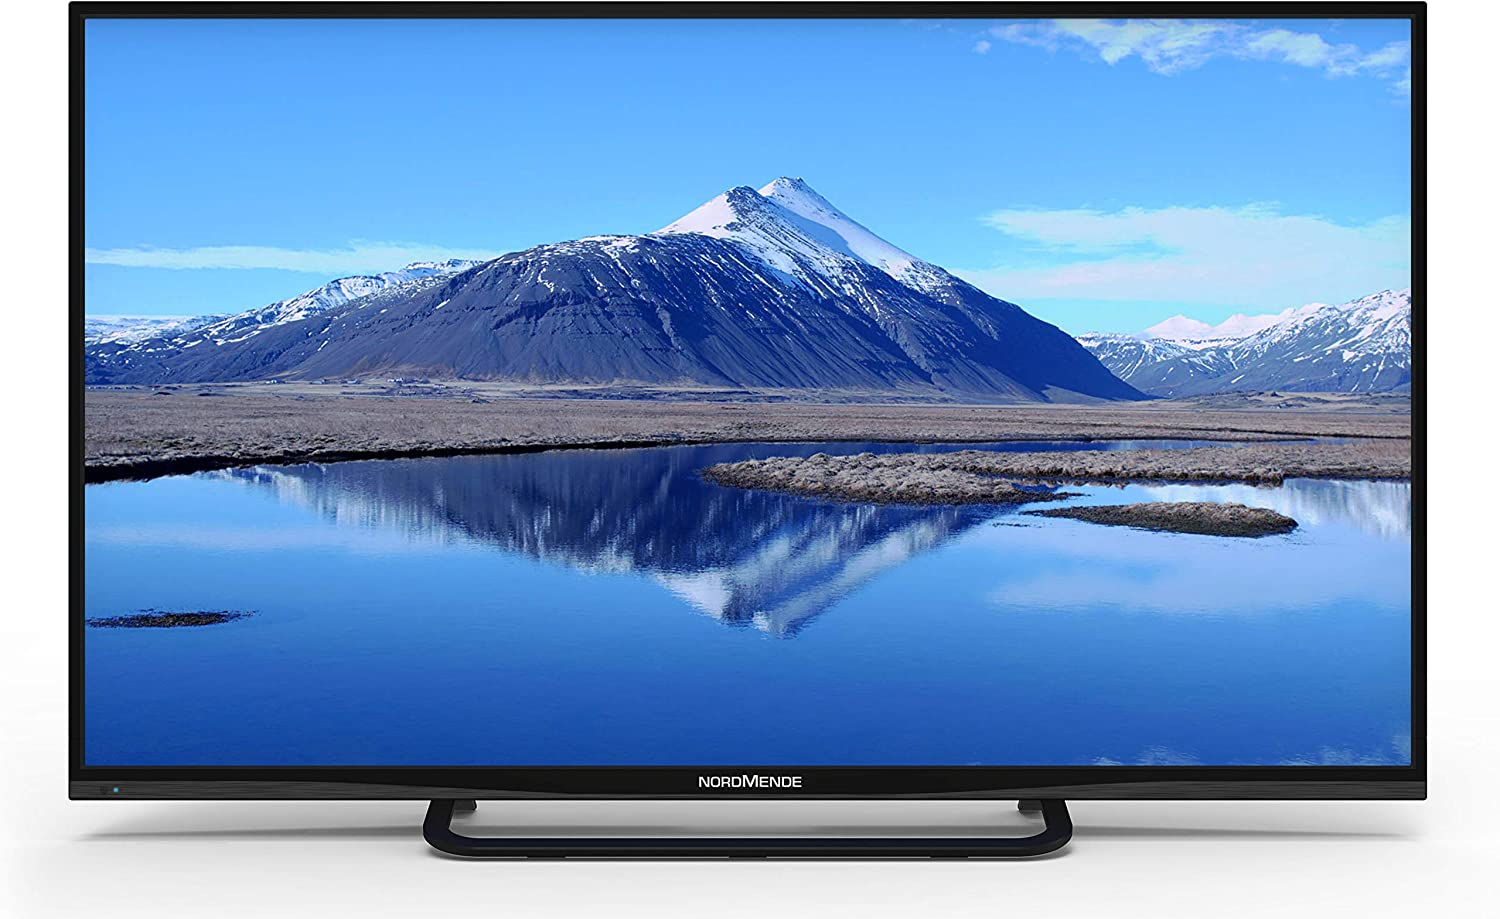 Nordmende nd50ks4000s televisor LED 50 Pulgadas TV UHD 4 K Smart Android: Amazon.es: Electrónica